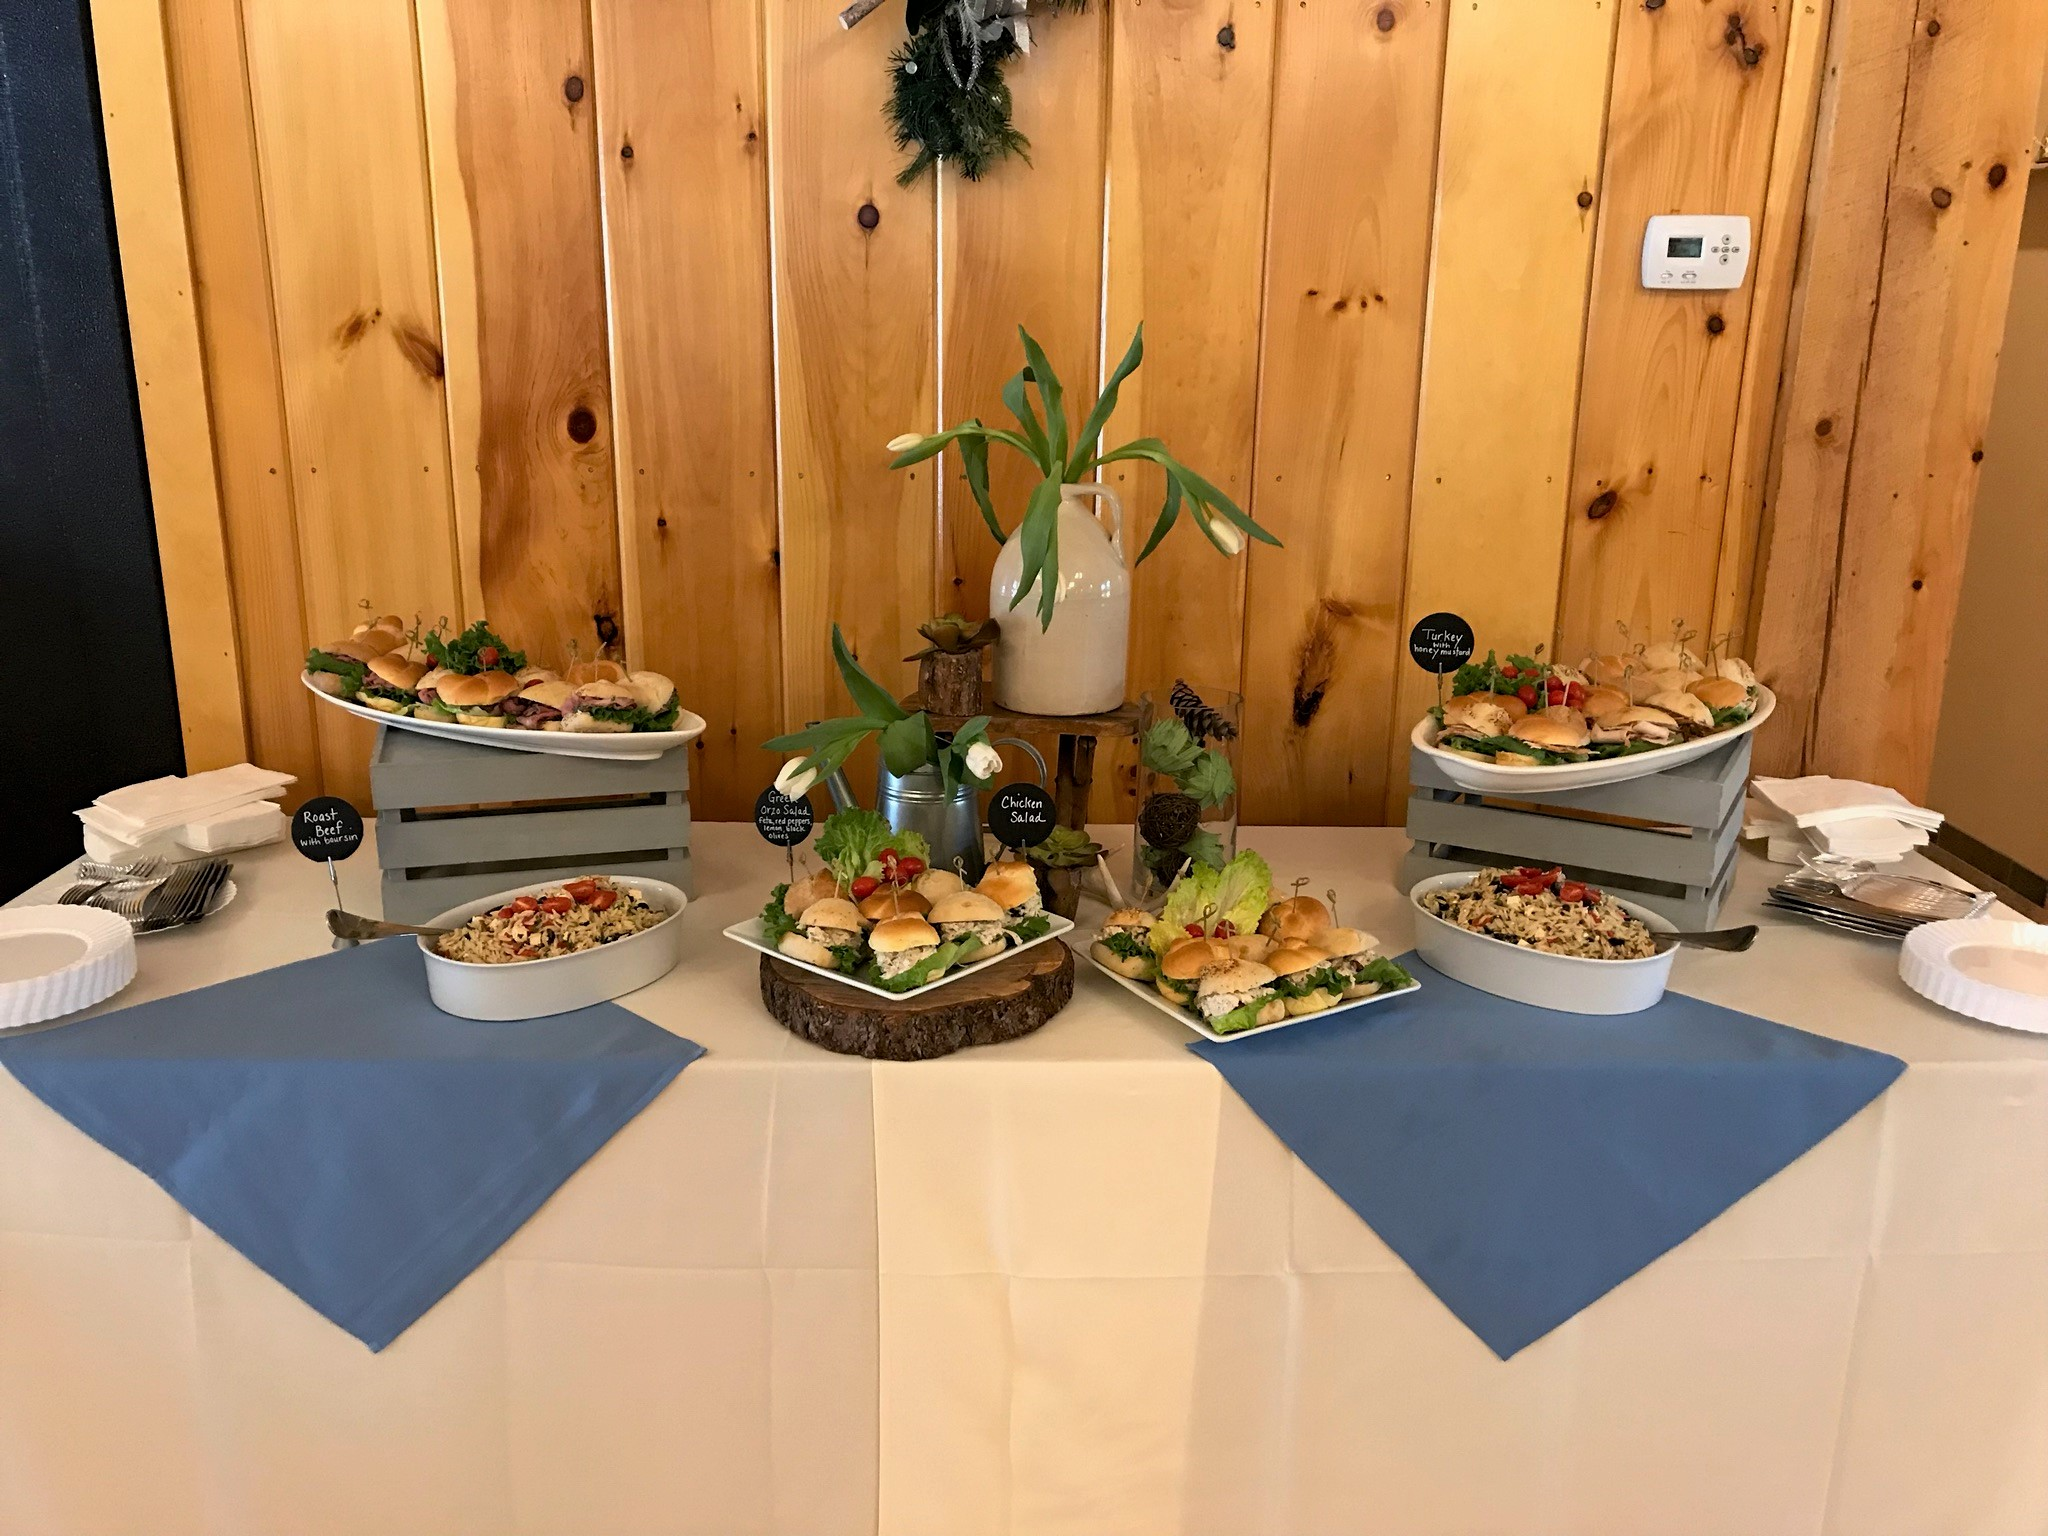 An assortment of dishes on a table with a white tablecloth and blue napkins. Using appetizers instead of a sit-down meal can cut catering costs.